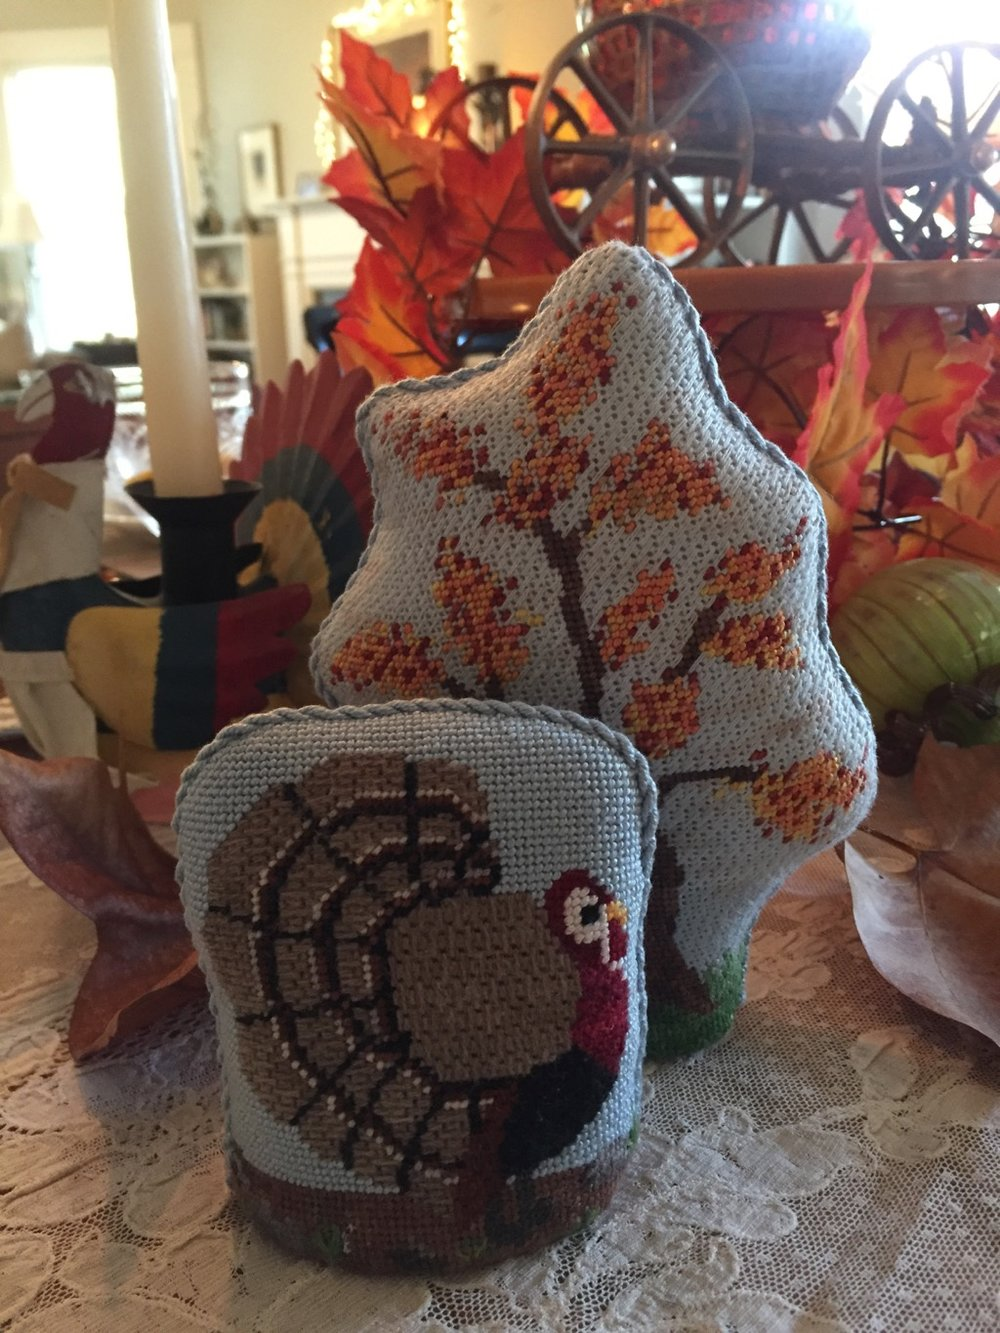 Needlepoint Thanksgiving decorations created by my mother.